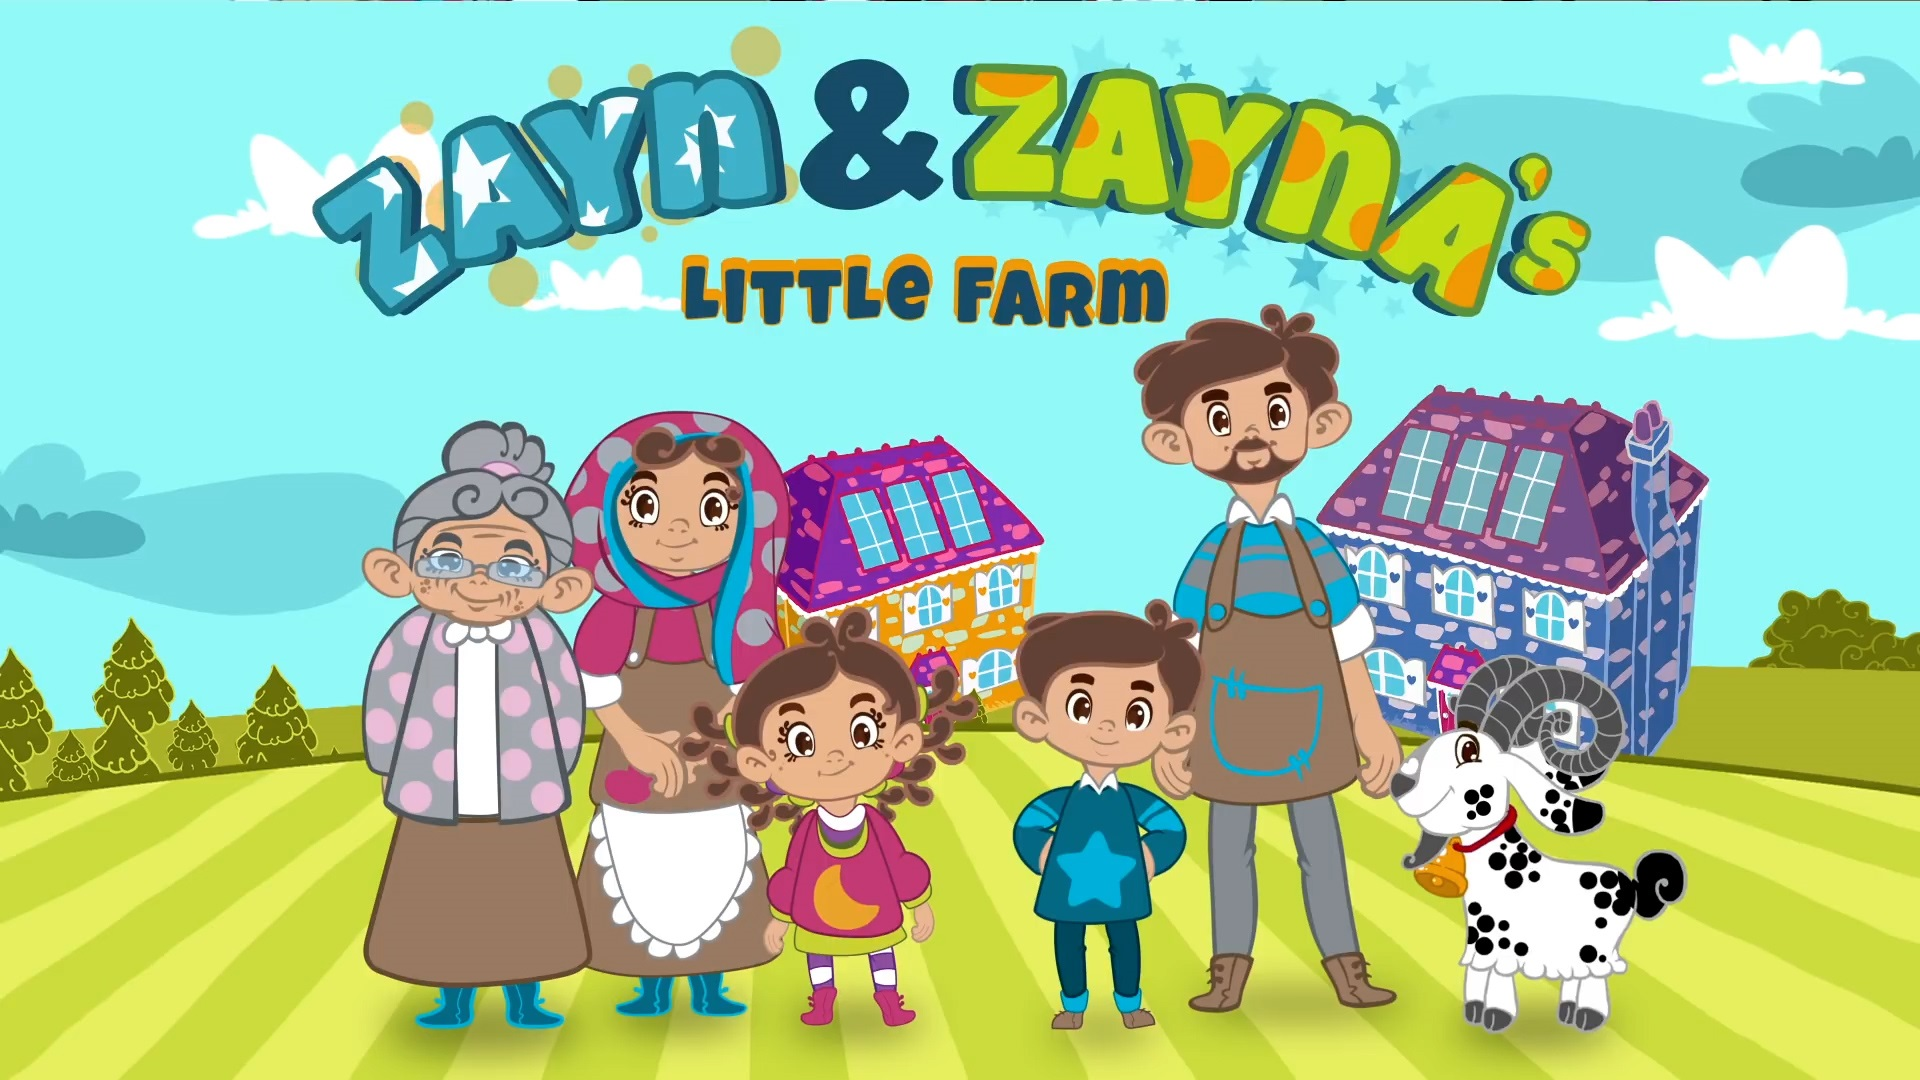 animated series Zayn and Zayna starts on Islam Channel in September